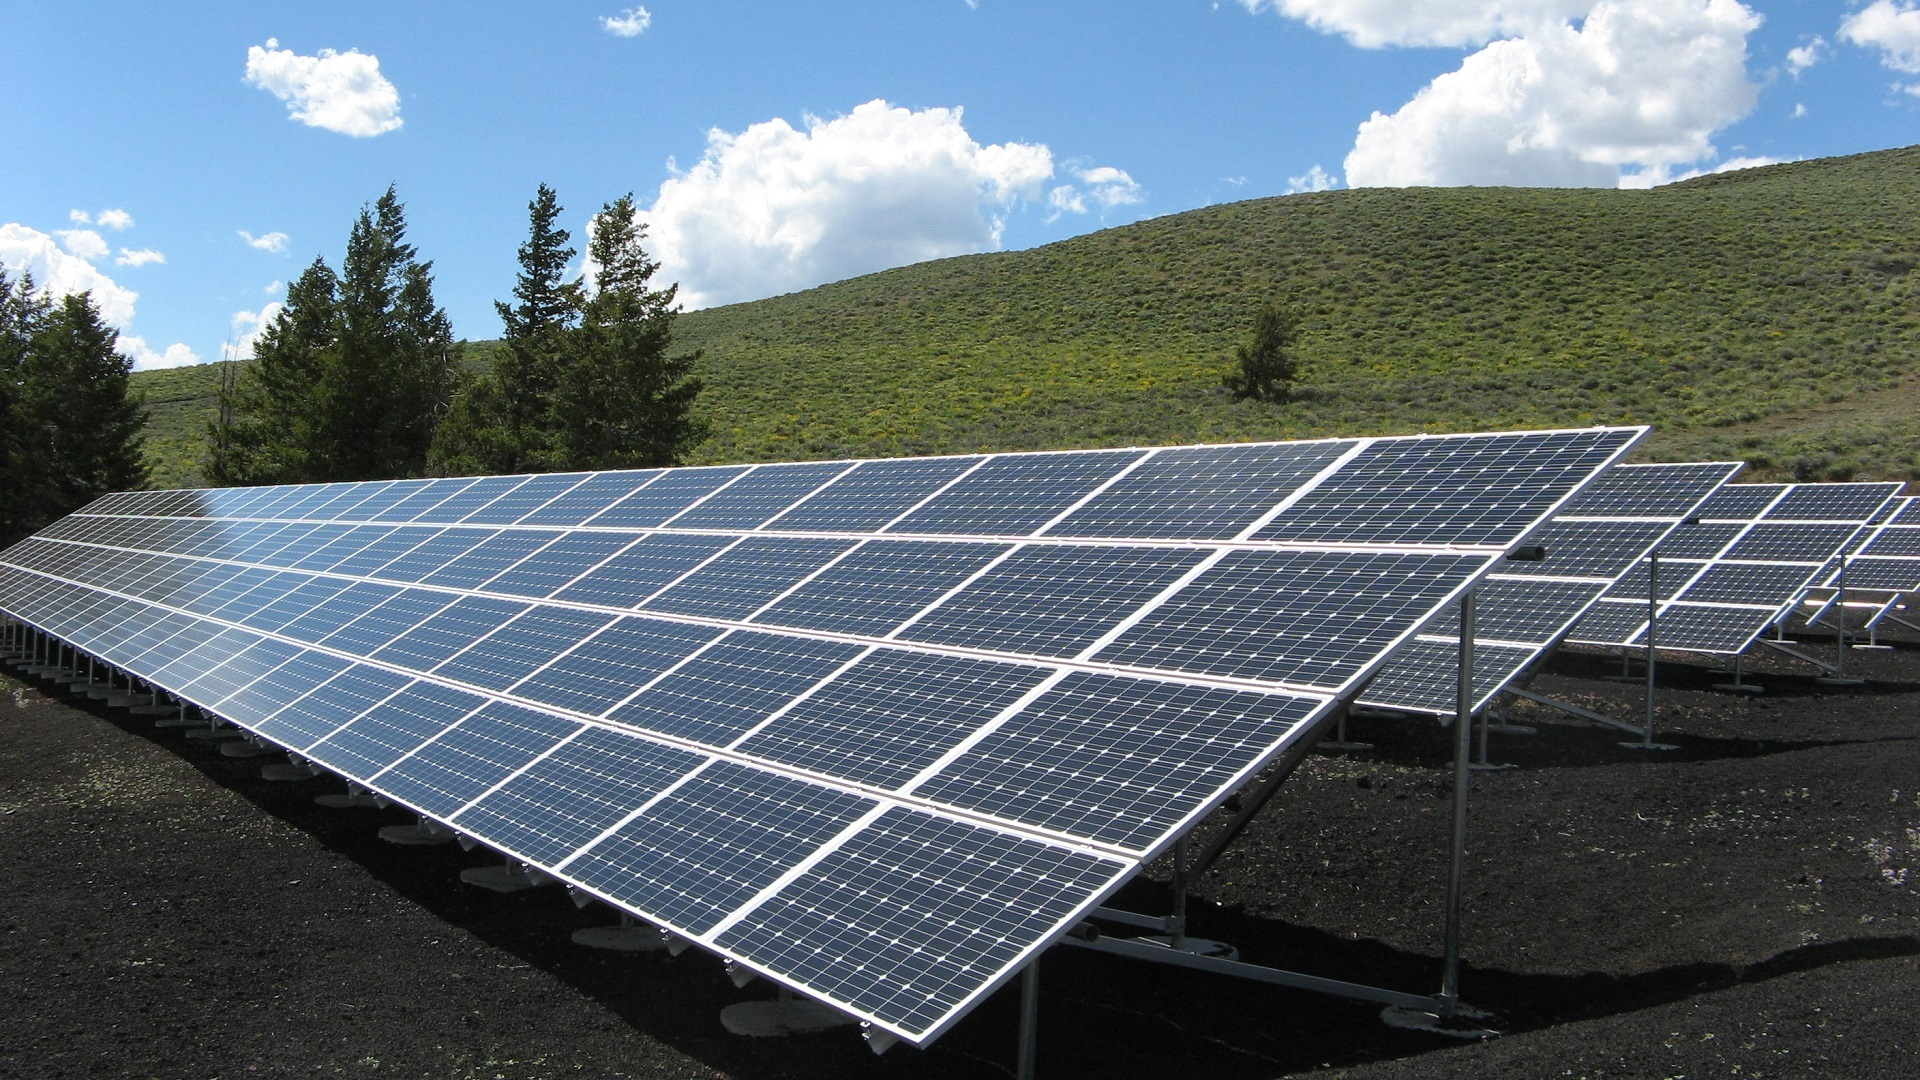 Solar-Panel-Array-Power-Sun-Strom-159397